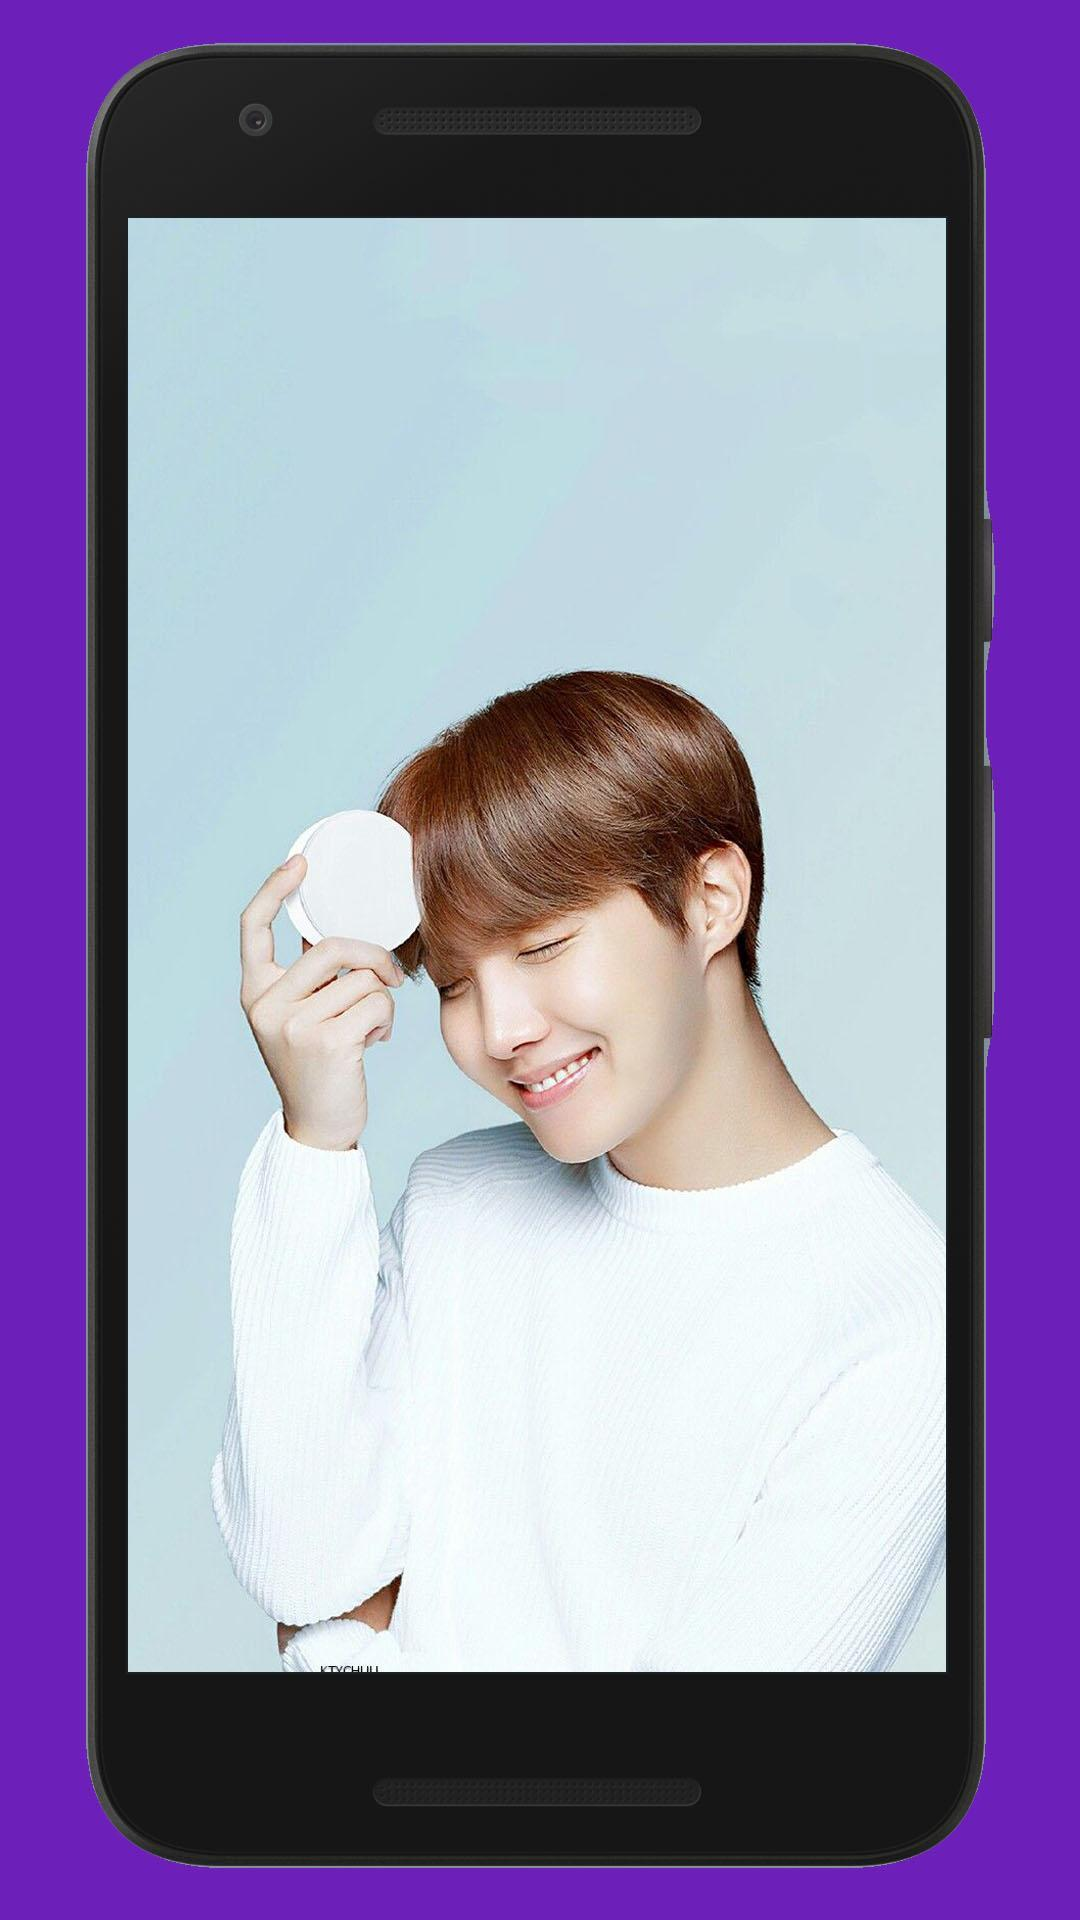 Bts J Hope Wallpapers Kpop Fans For Android Apk Download